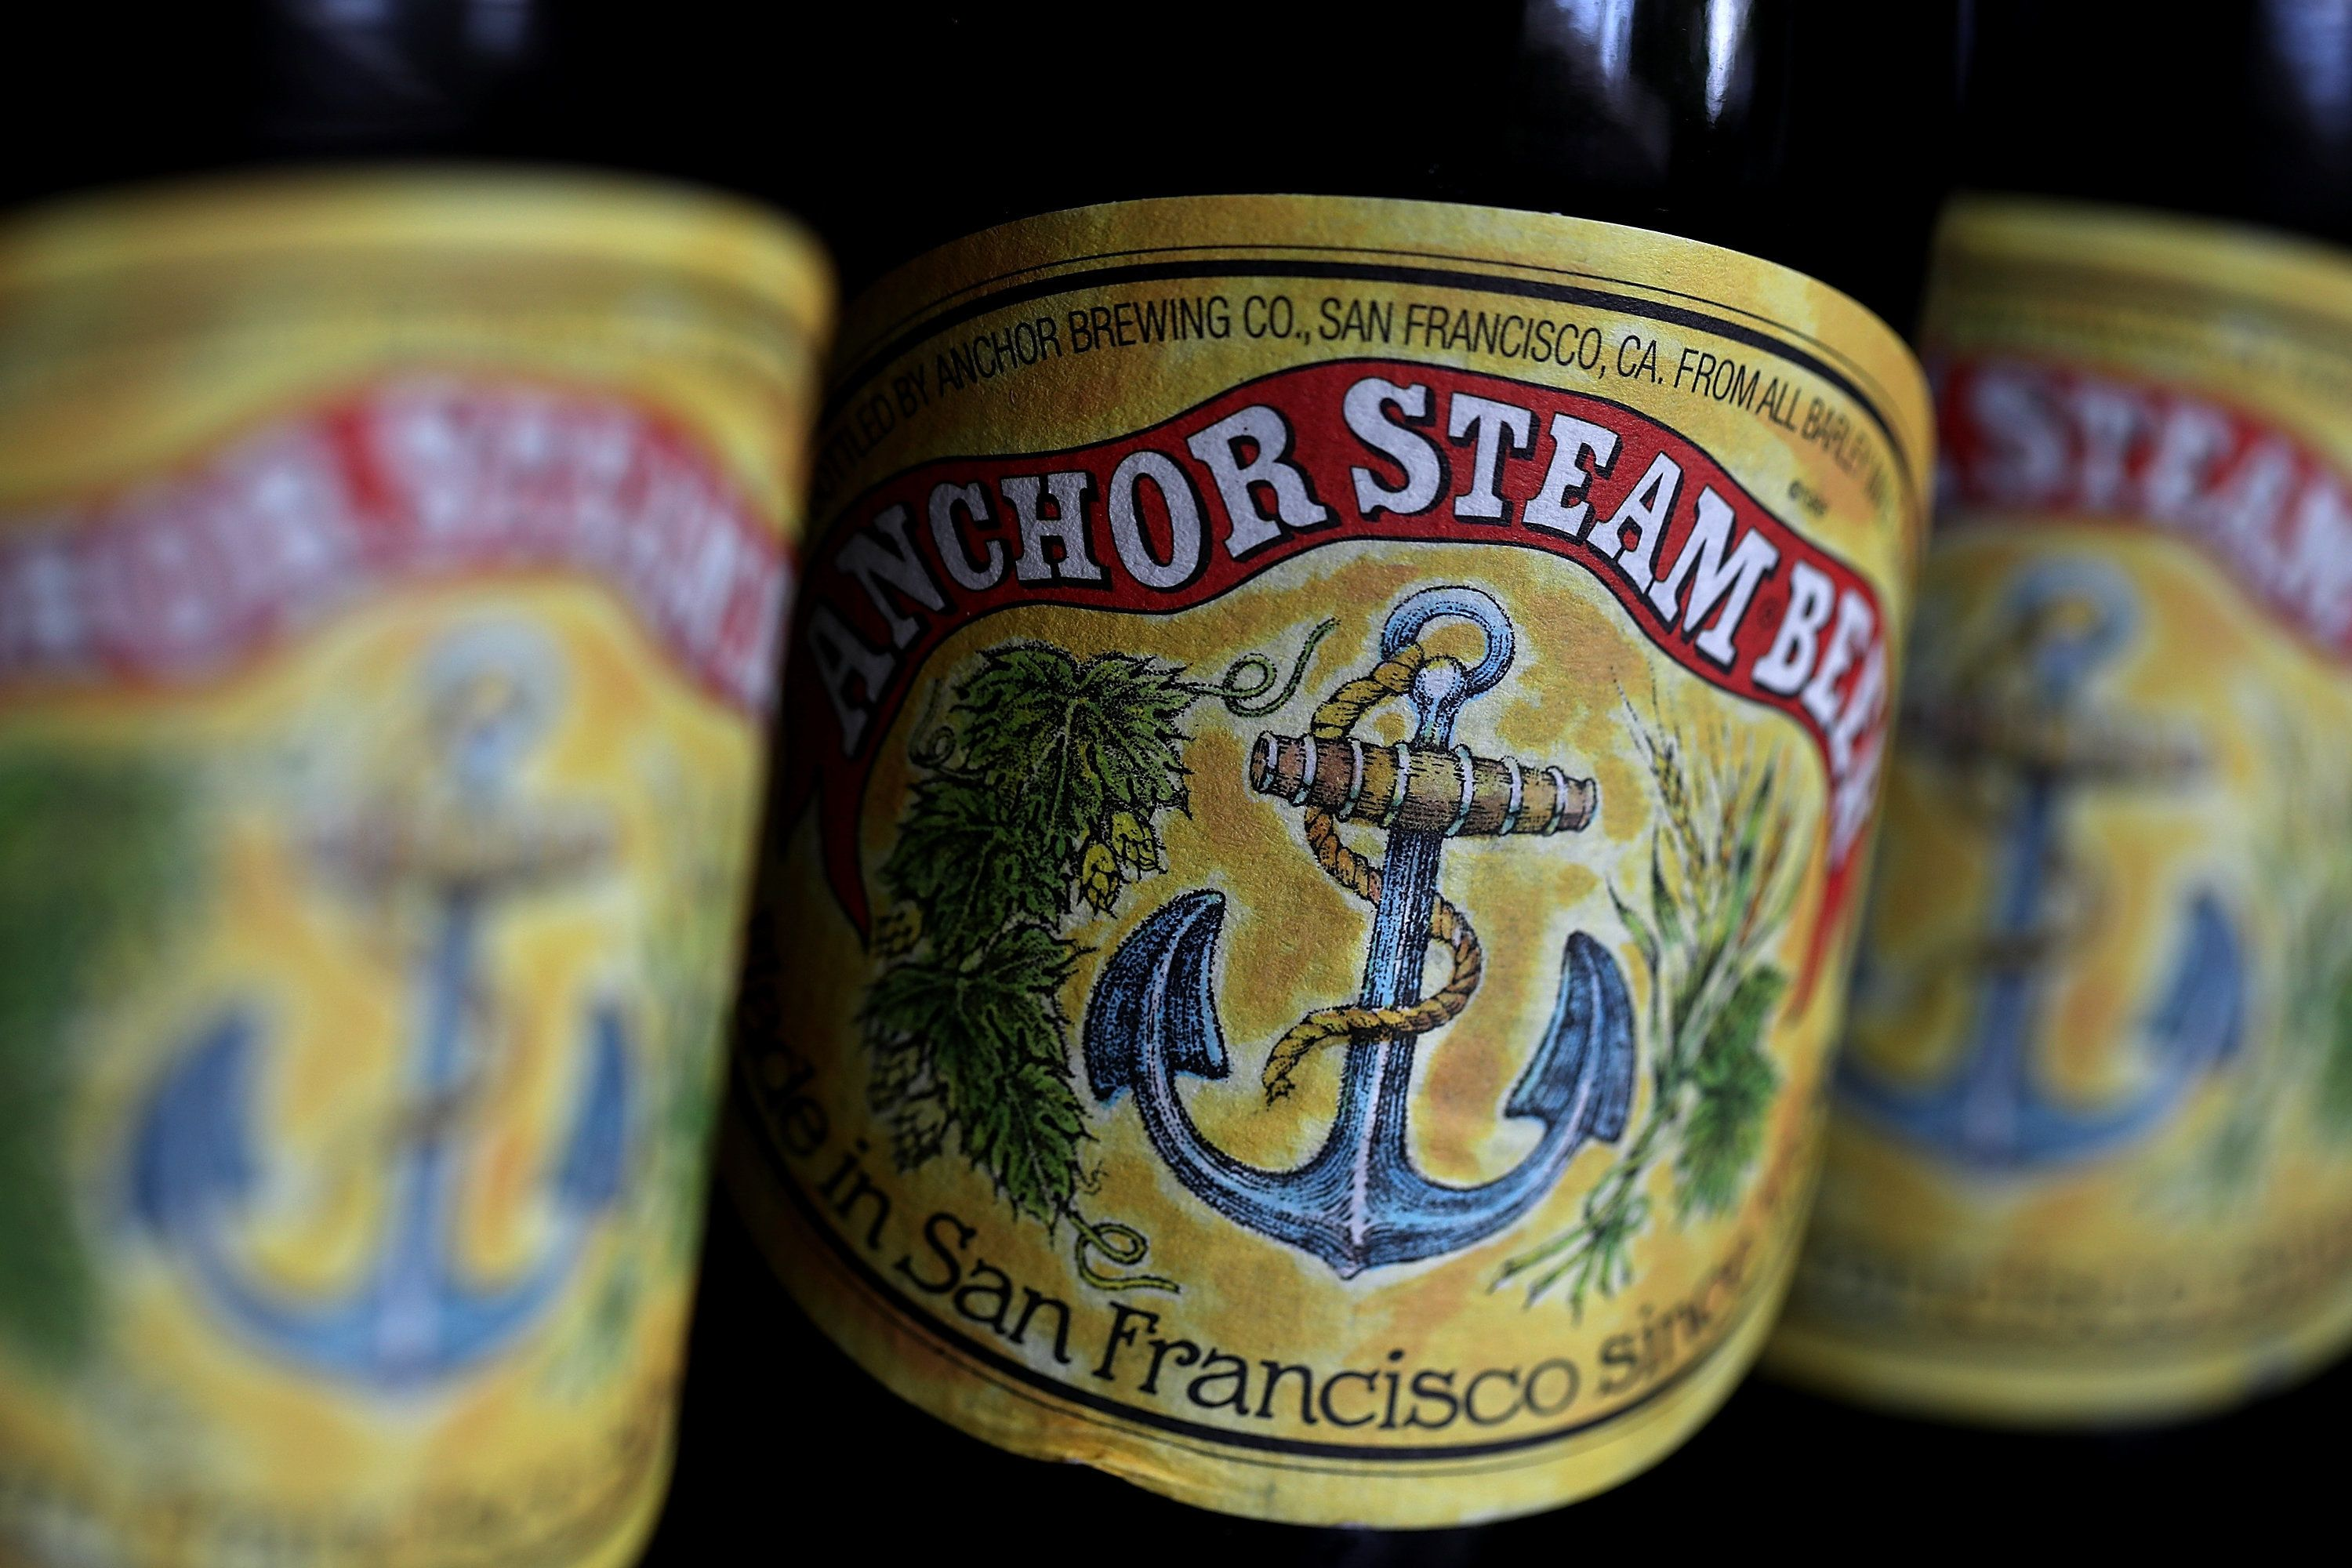 SAN ANSELMO, CA - AUGUST 03:  Bottles of Anchor Steam beer are displayed on August 3, 2017 in San Anselmo, California. San Francisco based Anchor Brewing announced plans to sell to JapanÕs Sapporo Holdings Ltd for an undisclosed amount. Anchor Steam has brewed in San Francisco for 121 years.  (Photo by Justin Sullivan/Getty Images)